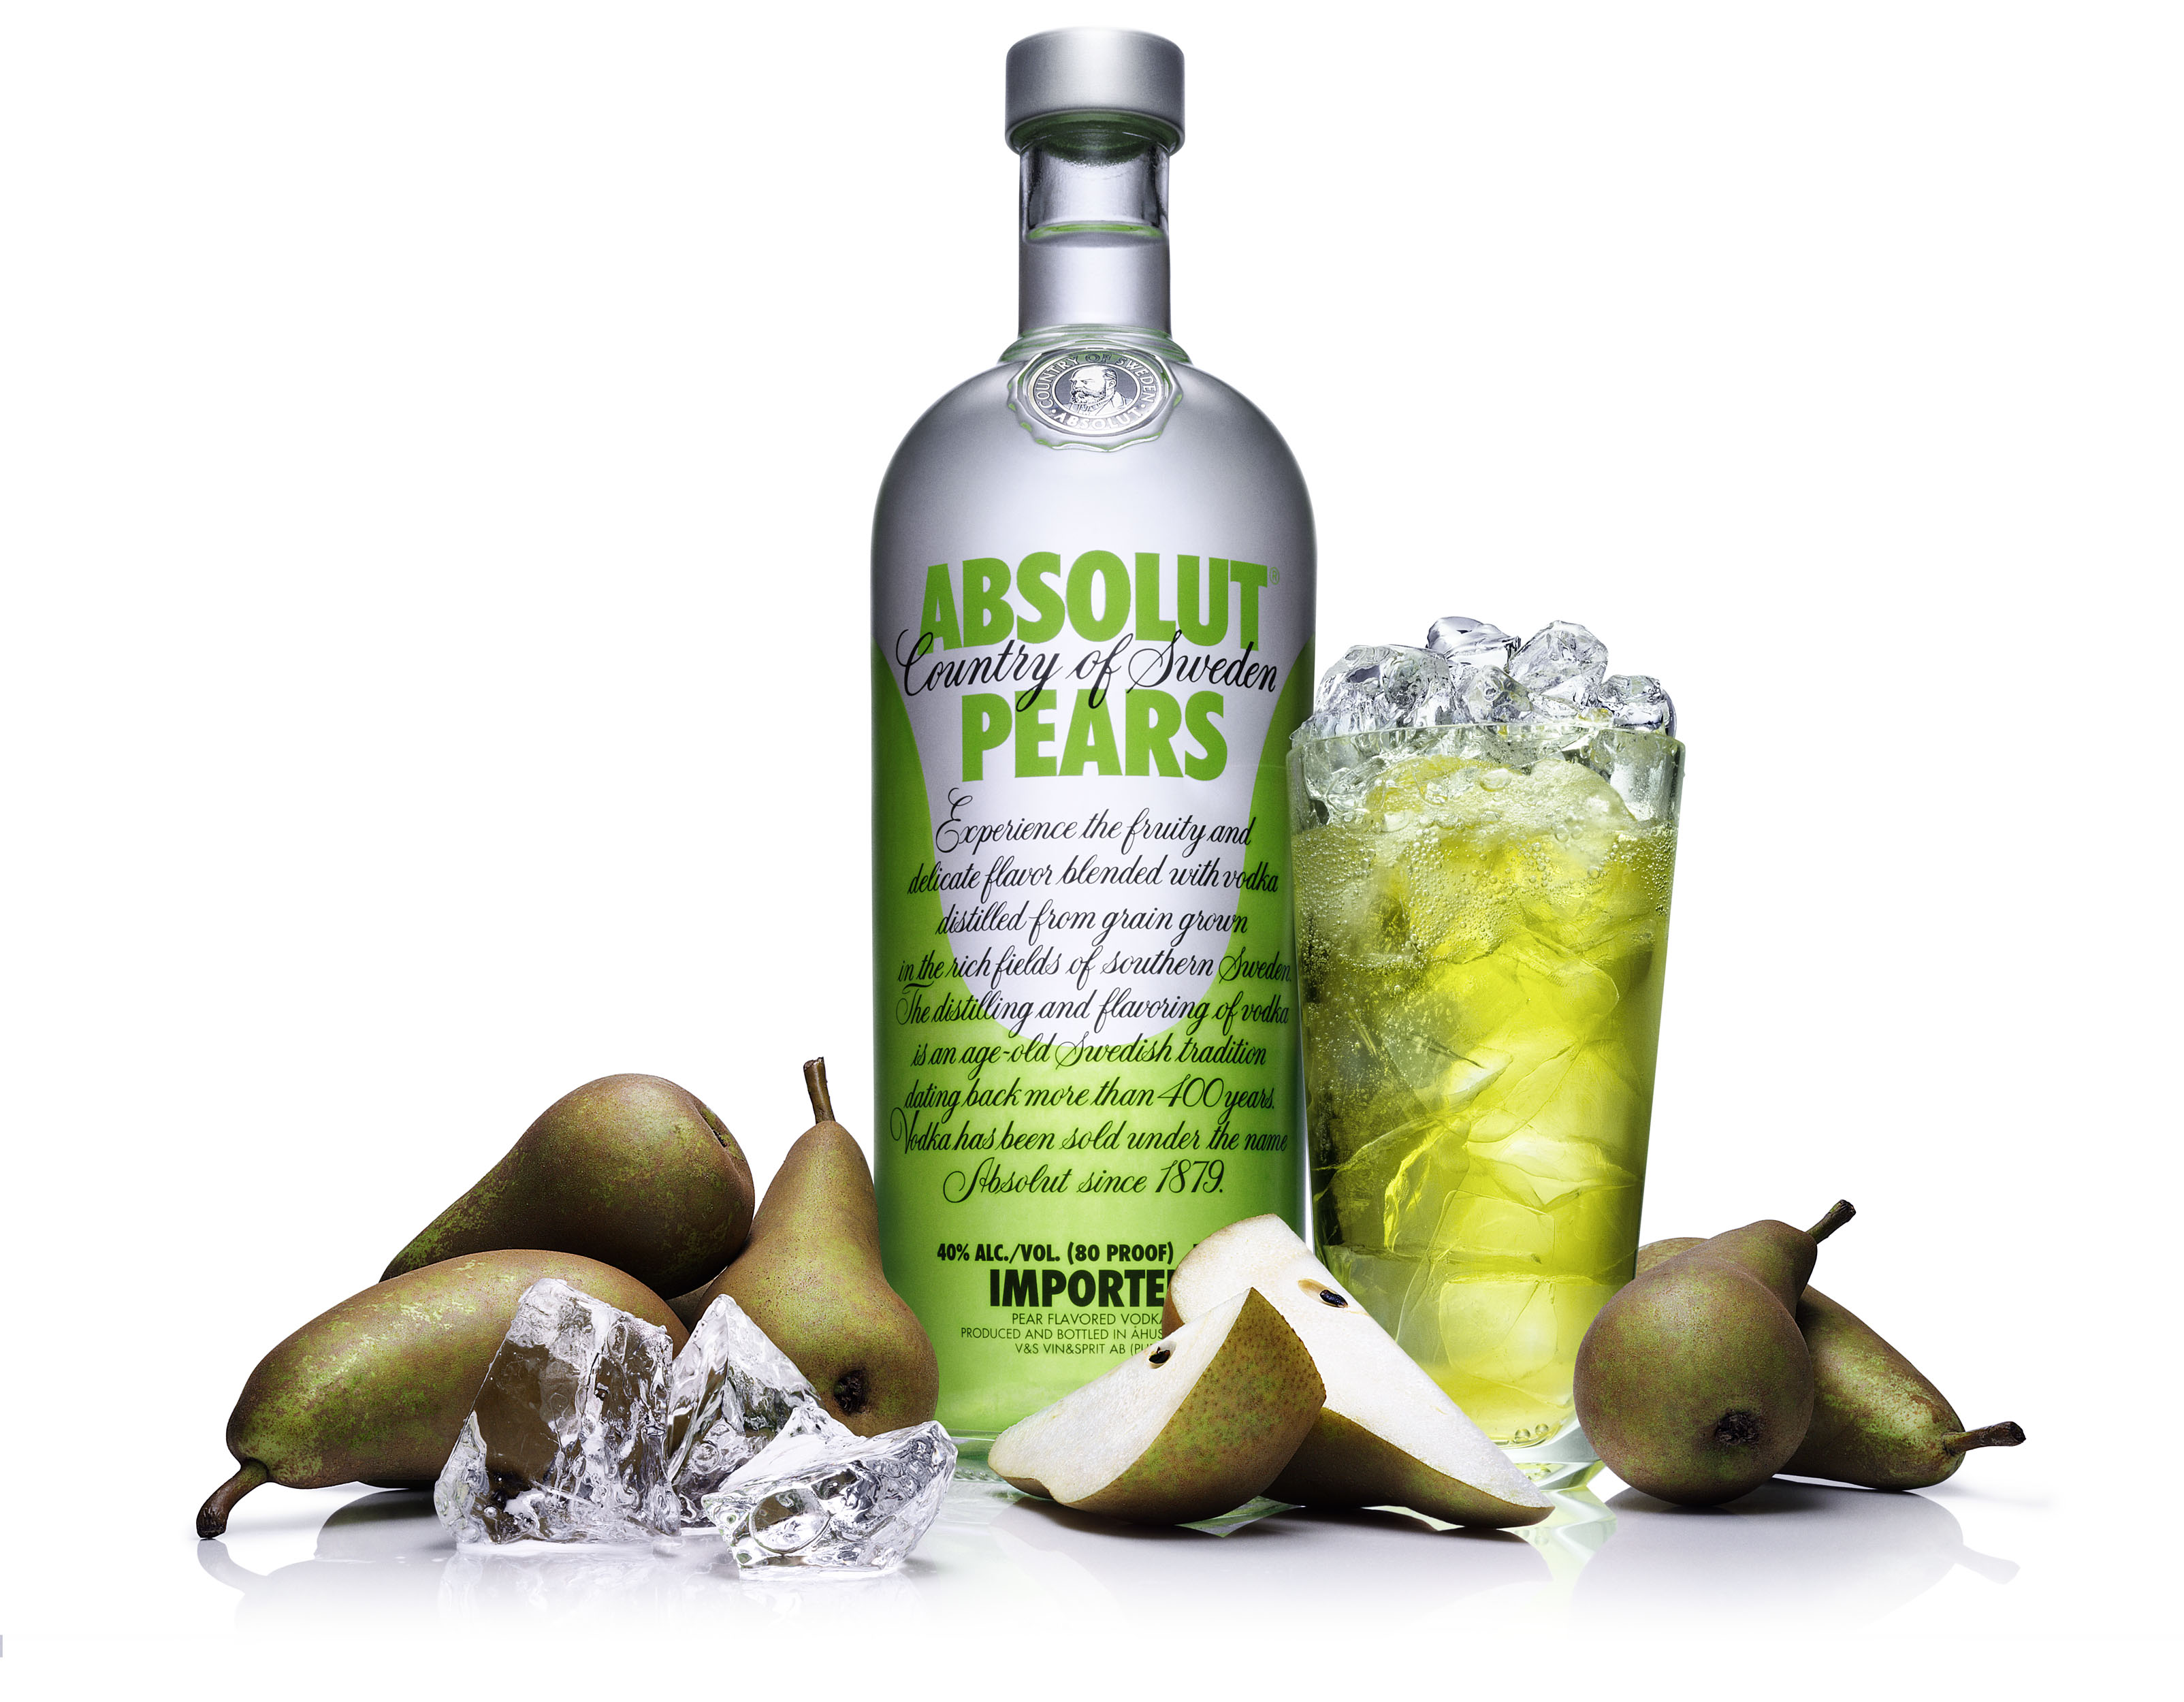 jensmortensen-absolut-vodka-c0973e6a